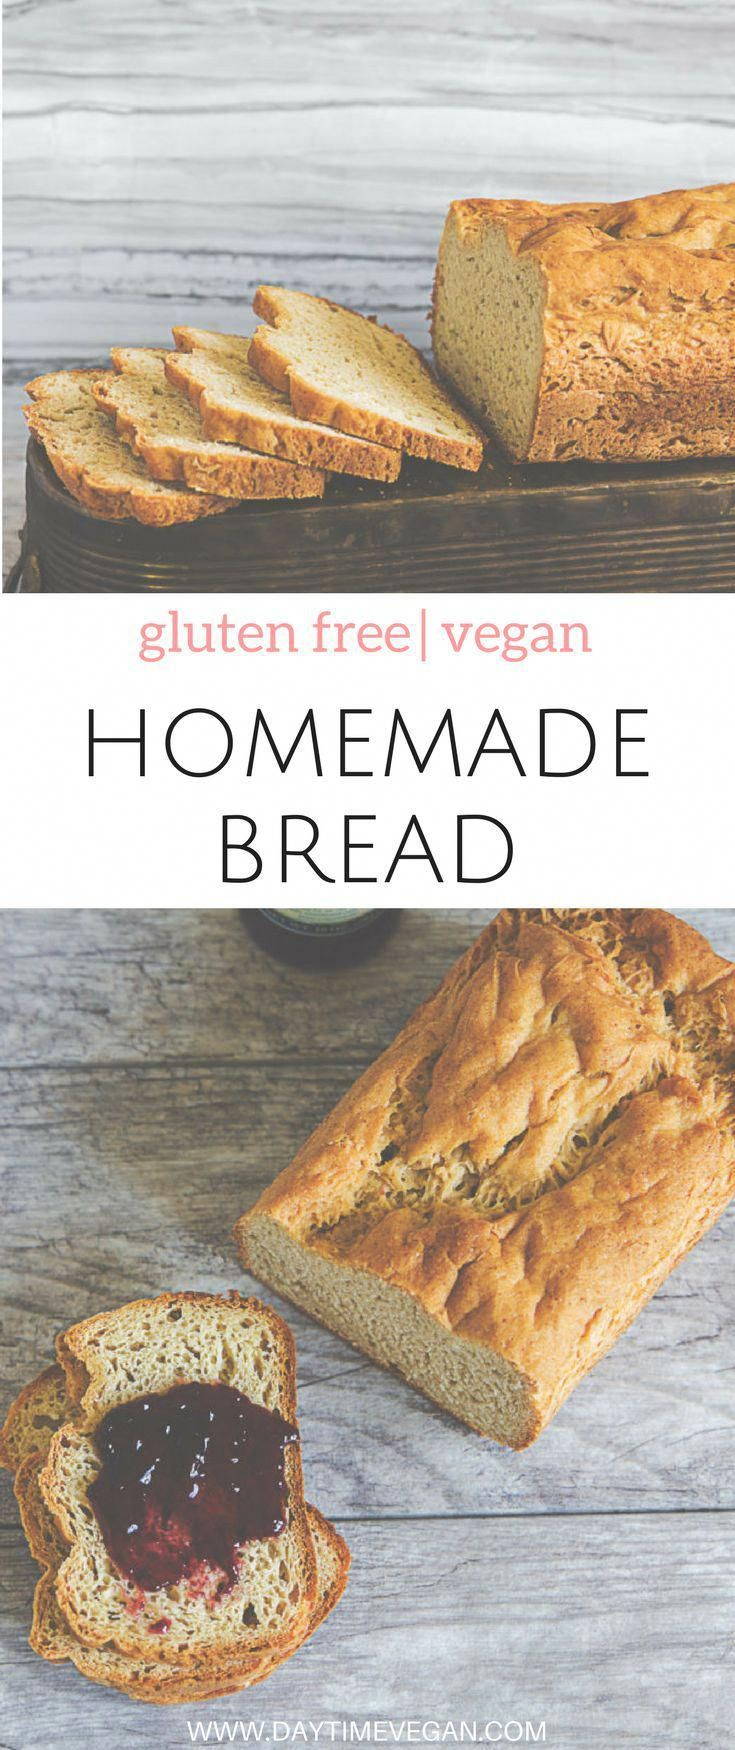 Easy Vegan & Gluten-free Homemade Bread Recipe | Easy vegan recipes for beginners | Vegan meal plans | Vegan bread recipe